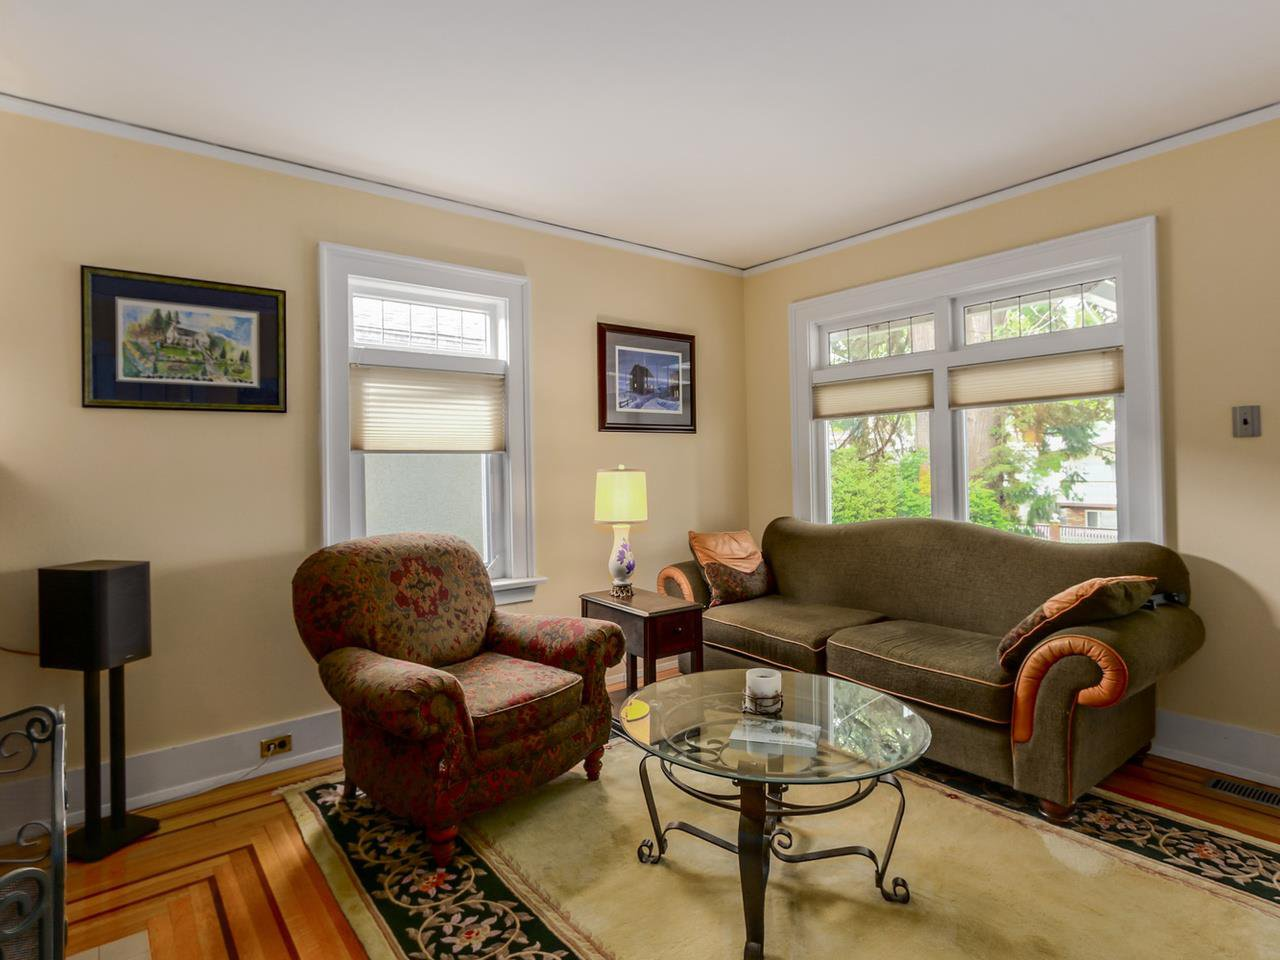 Photo 3: Photos: 1760 E 37TH AVENUE in Vancouver: Victoria VE House for sale (Vancouver East)  : MLS®# R2059026